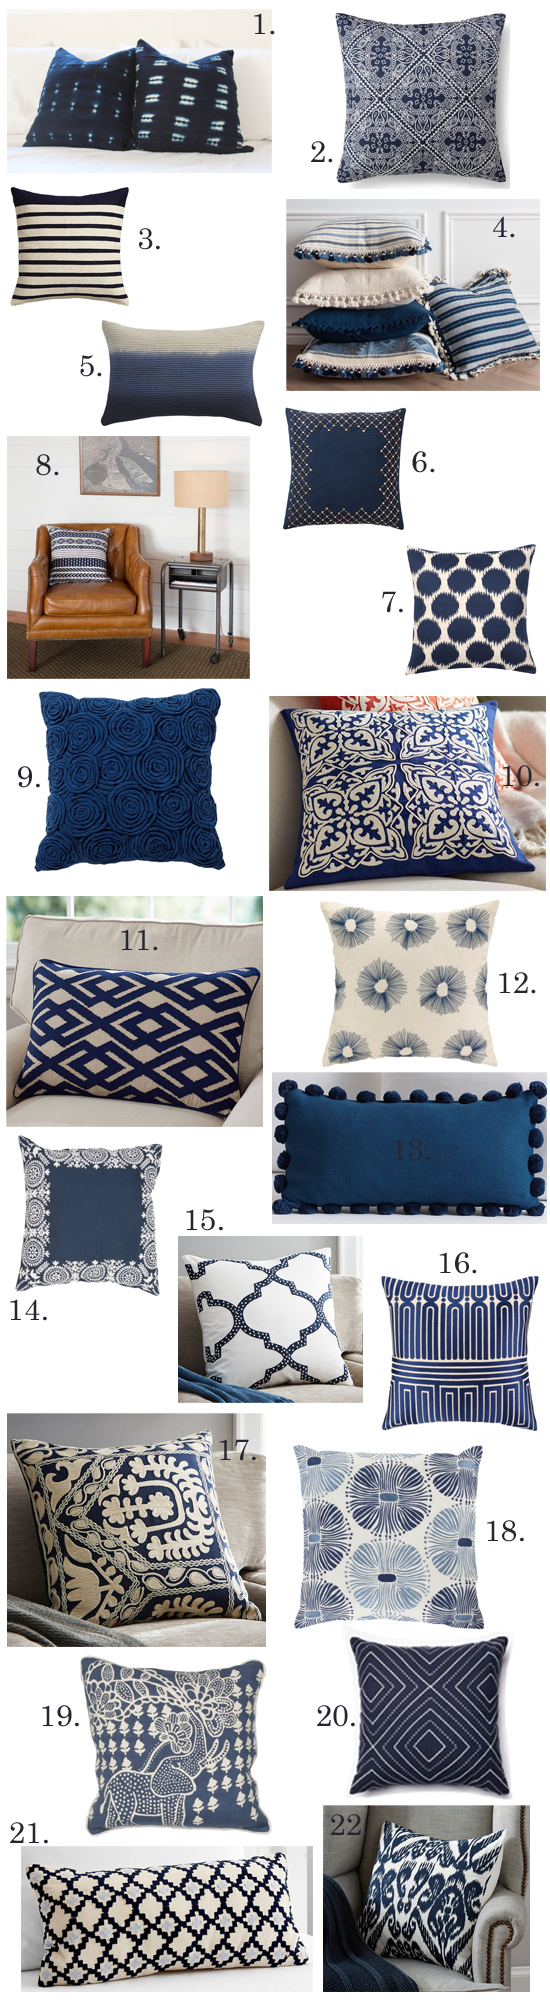 7 Dazzling Colors That Go with Navy Blue | Blue living room